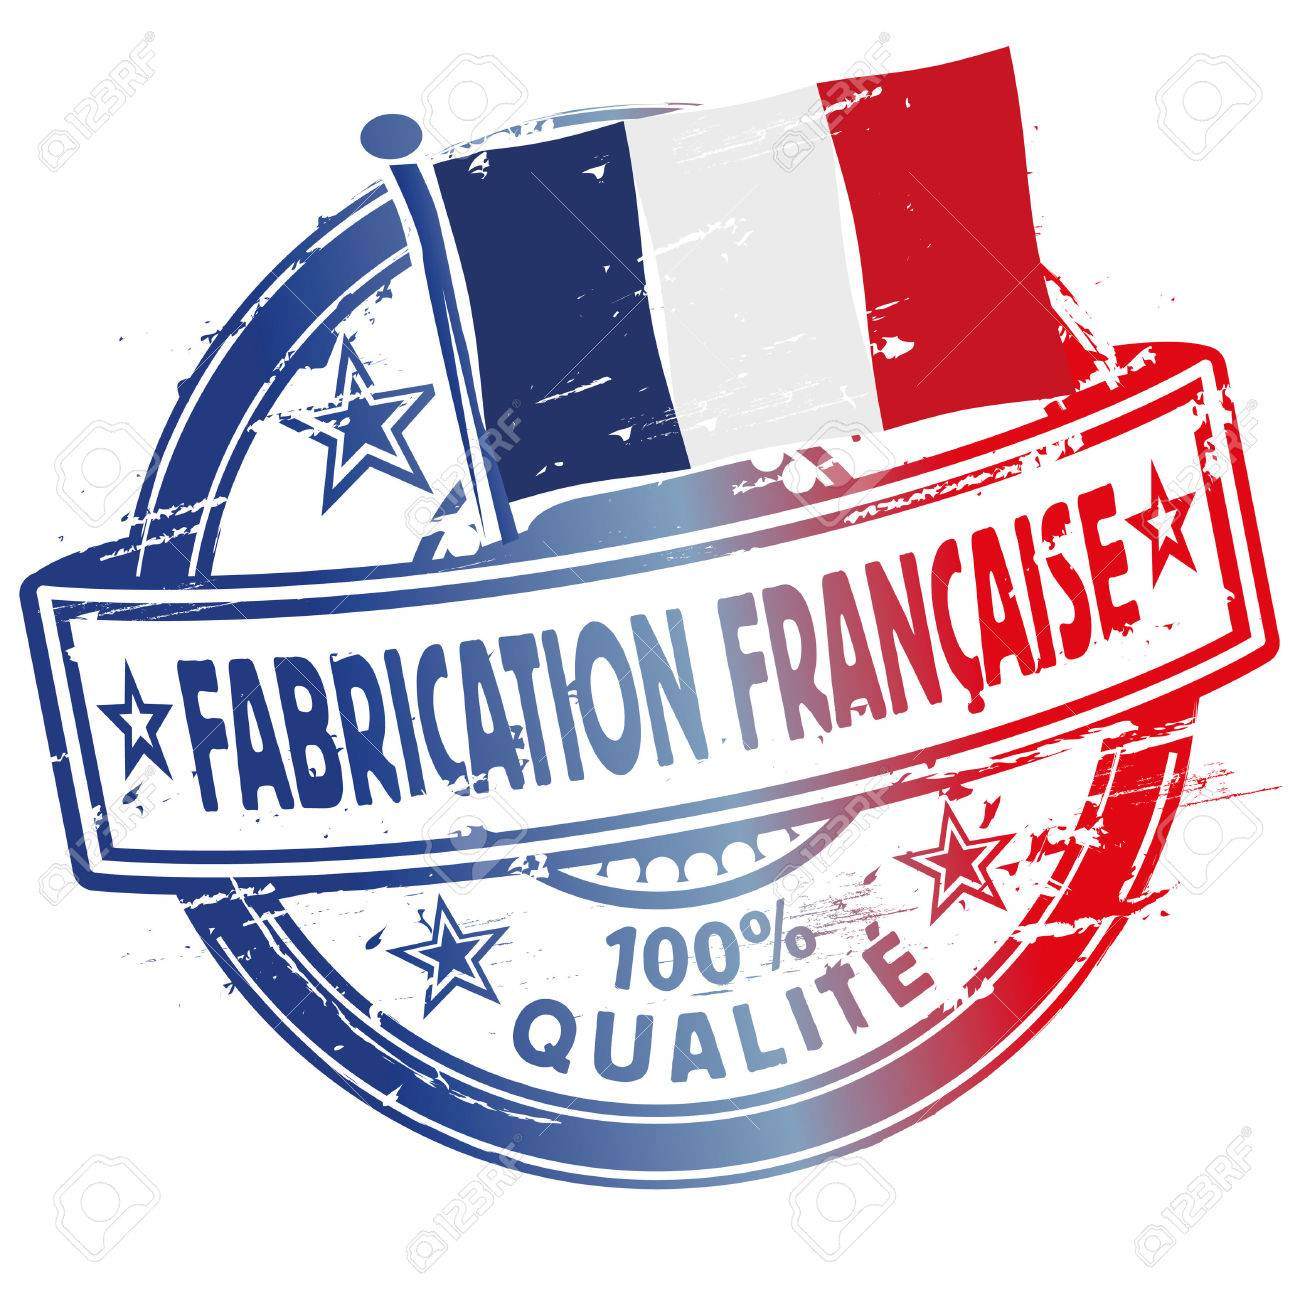 Rubber stamp fabrication francaise - 40086100